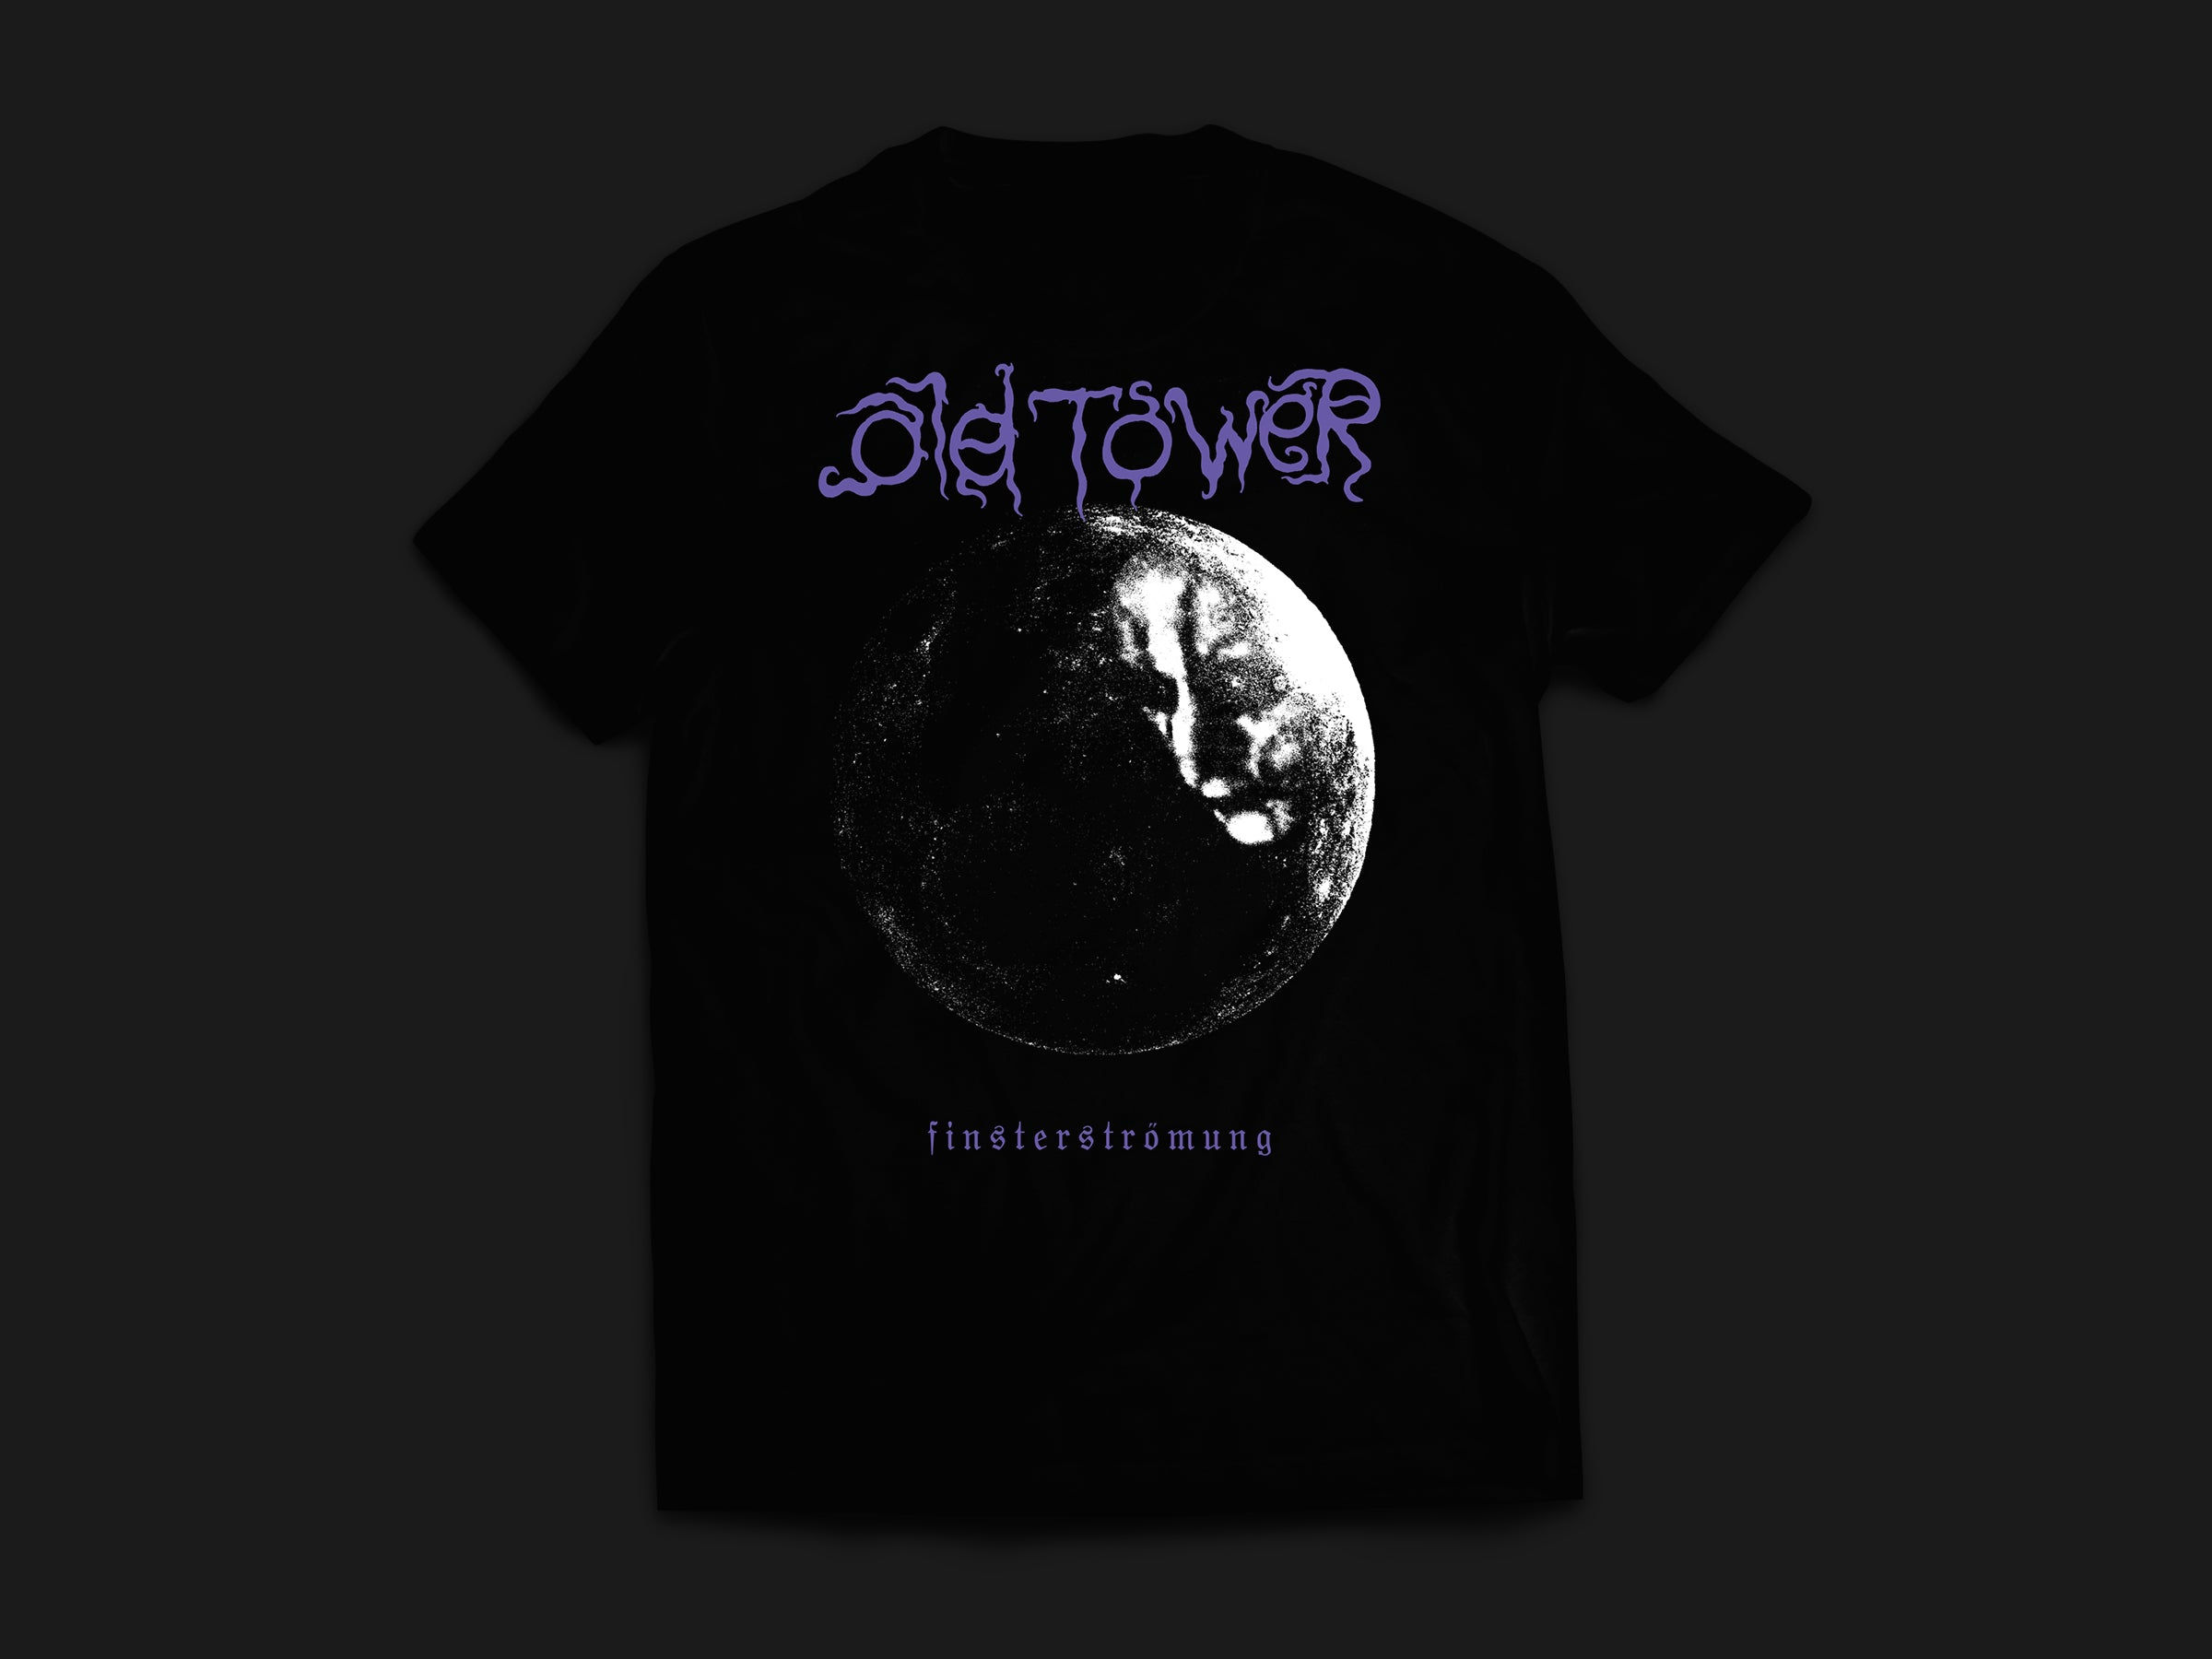 OLD TOWER | FINSTERSTRÖMUNG | T SHIRT